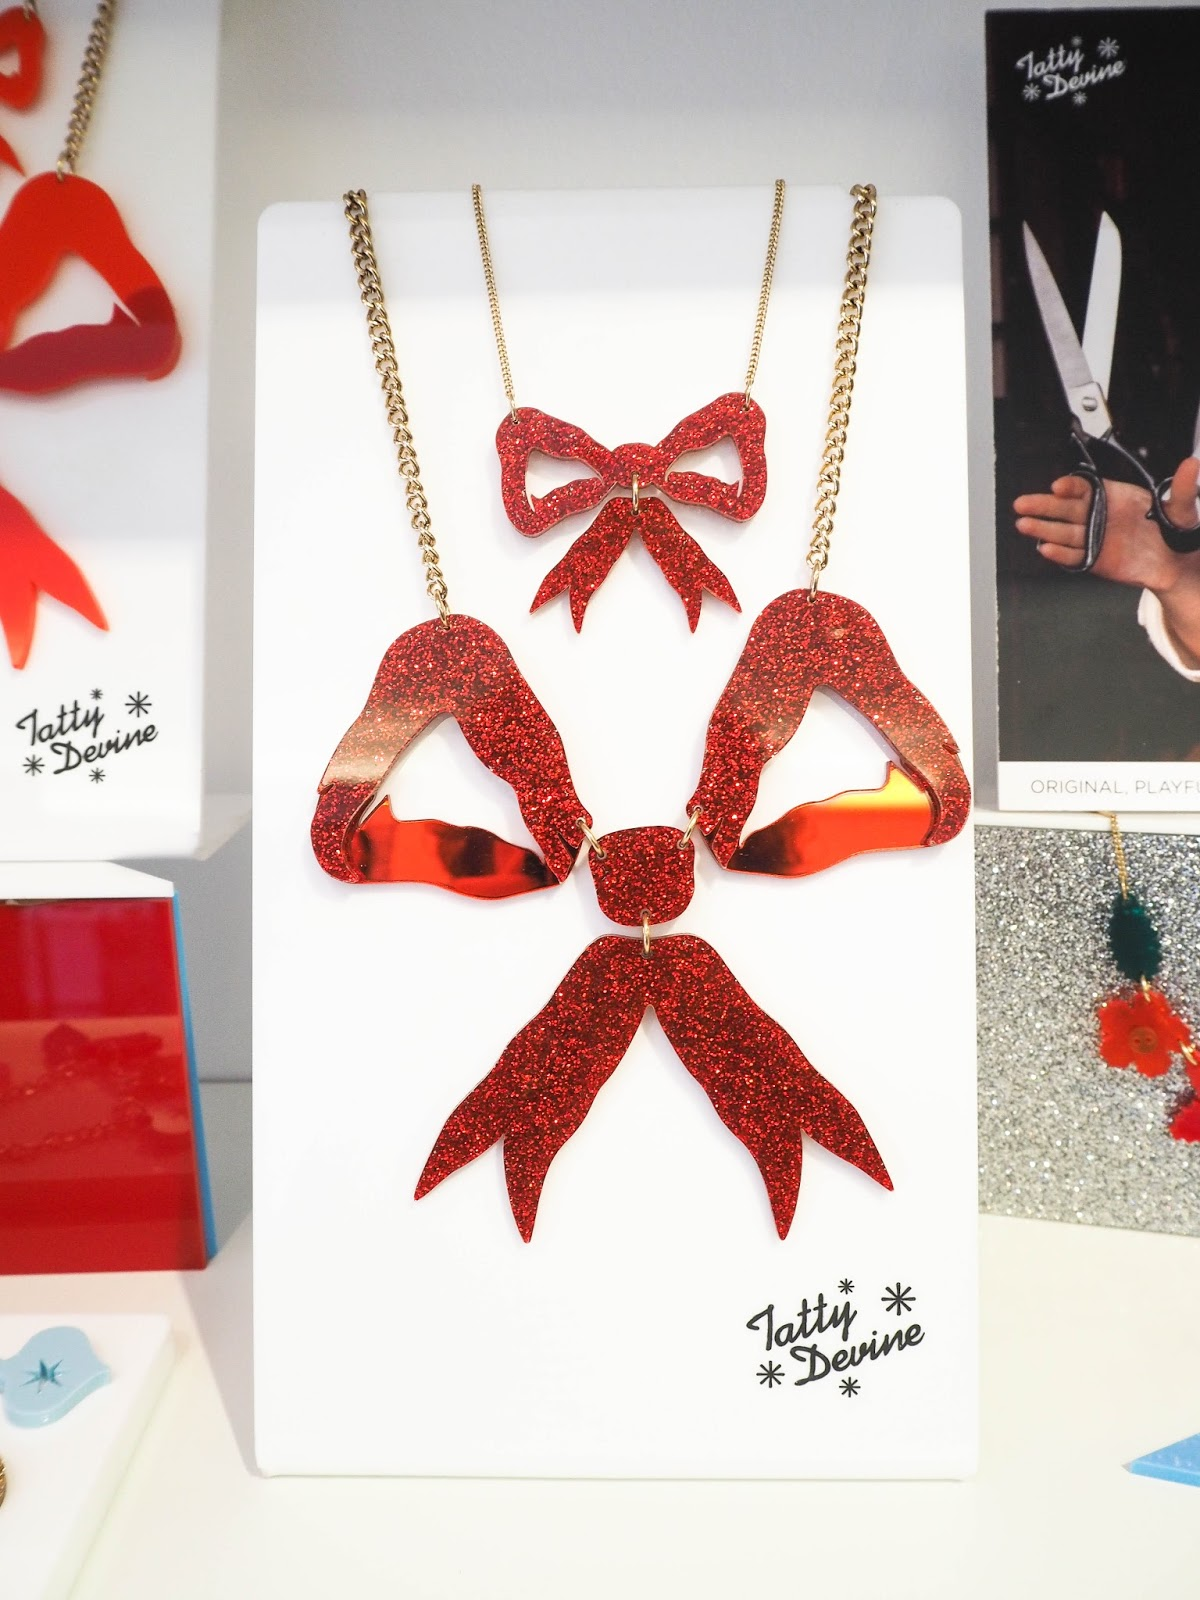 Tatty Devine Christmas red bow necklace